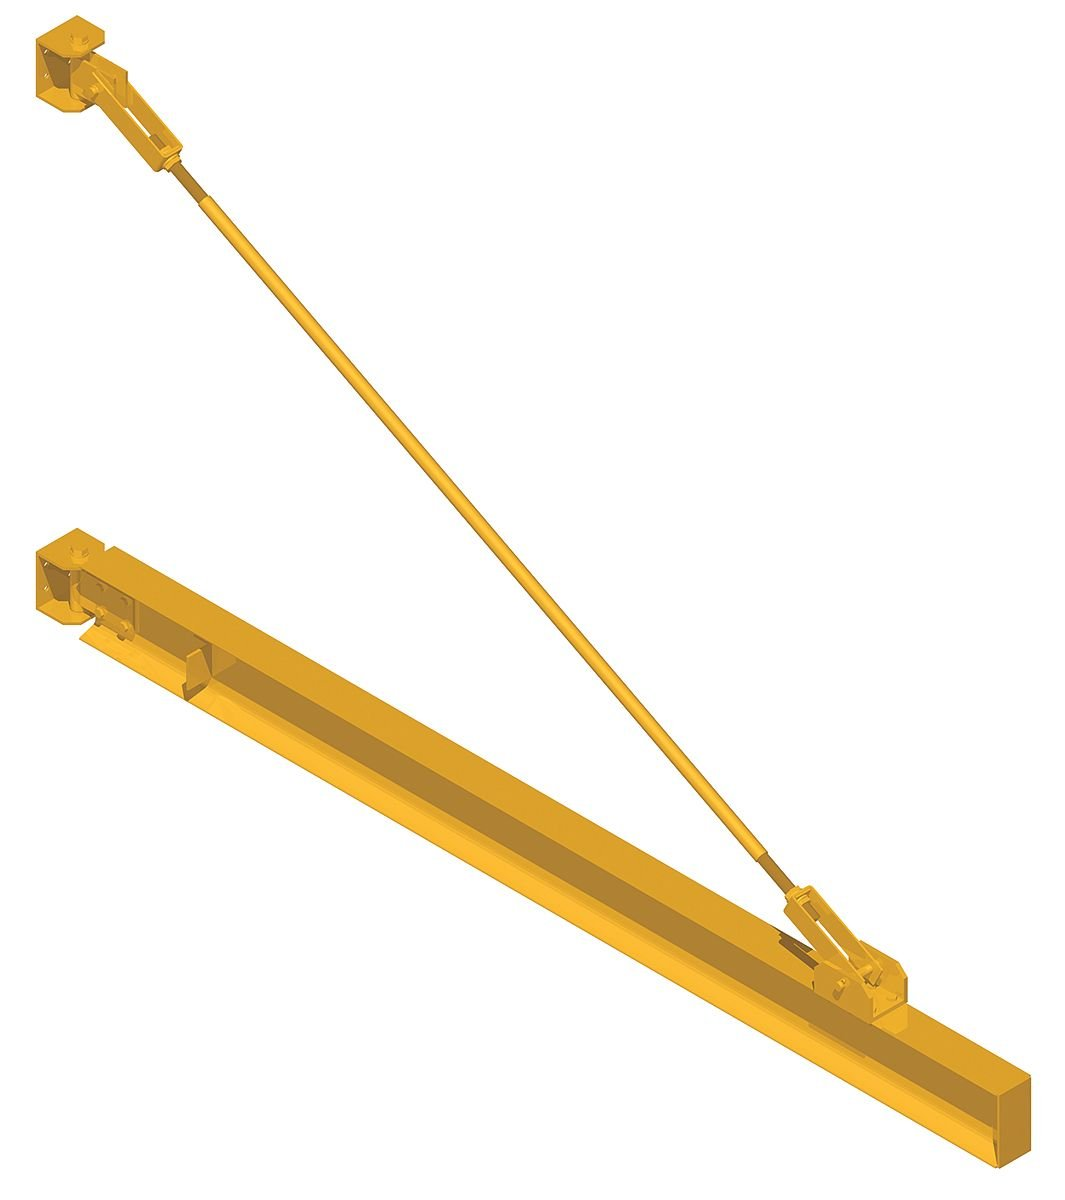 Jib Cap 1000Lb Weight 1251Lb D180-1//2-28 The Caldwell Group Wall Mount